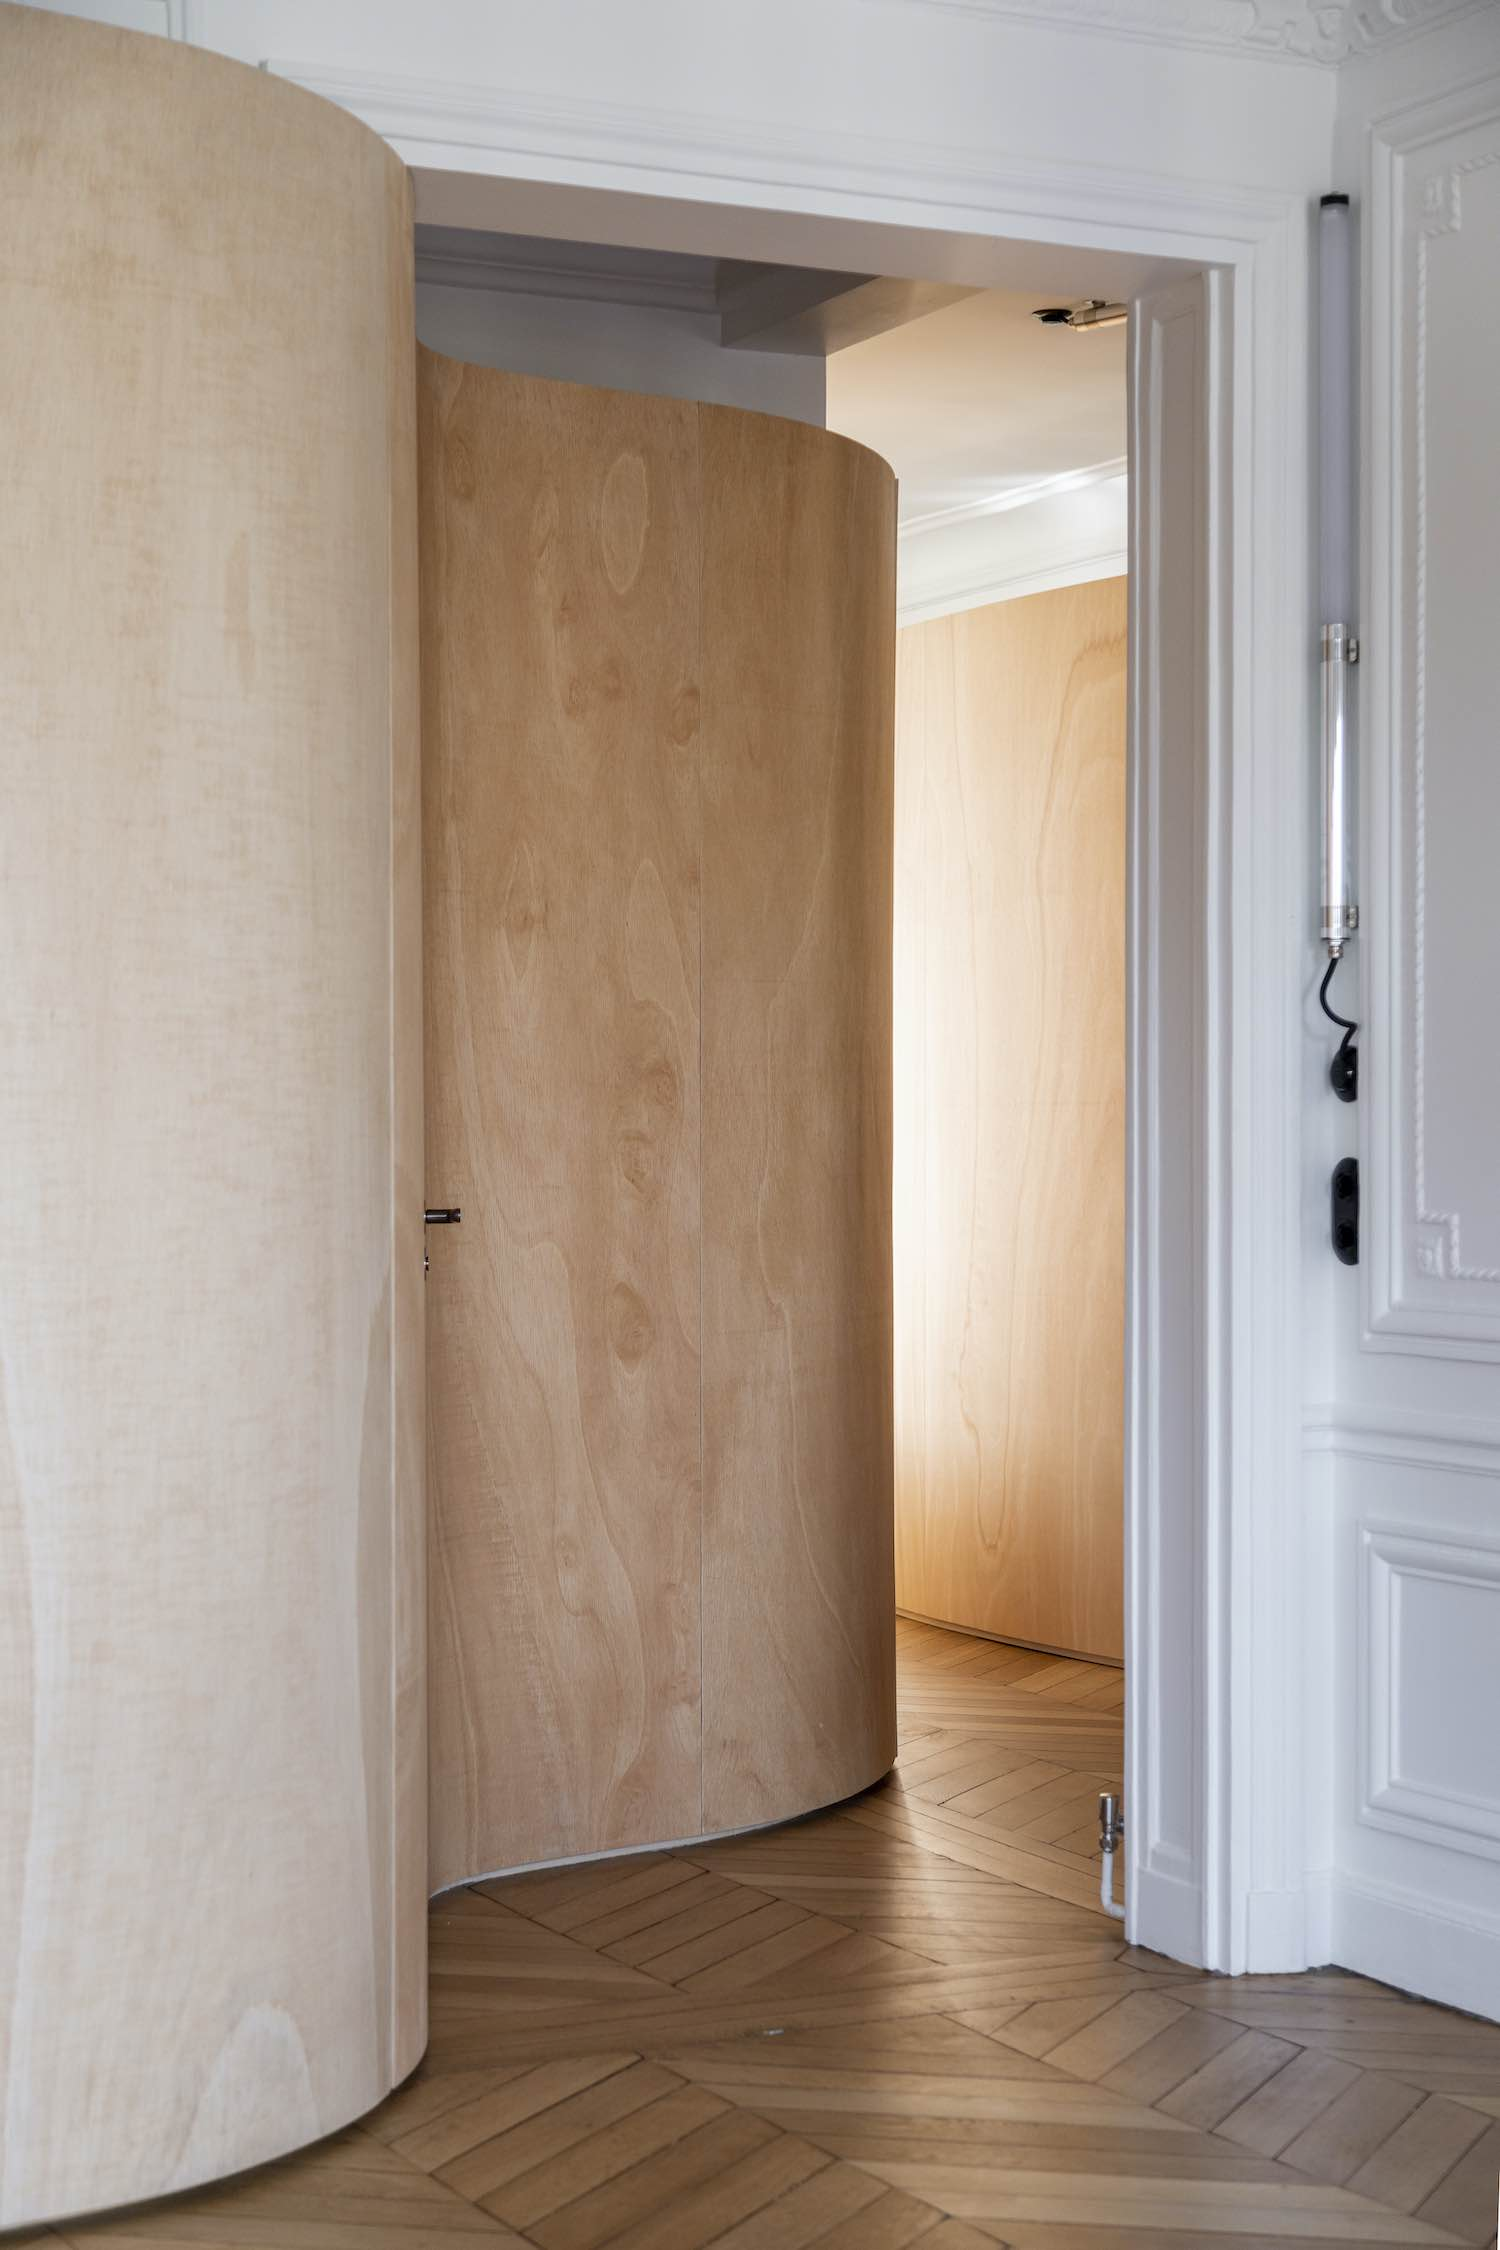 wooden wall installed in this tiny apartment in France